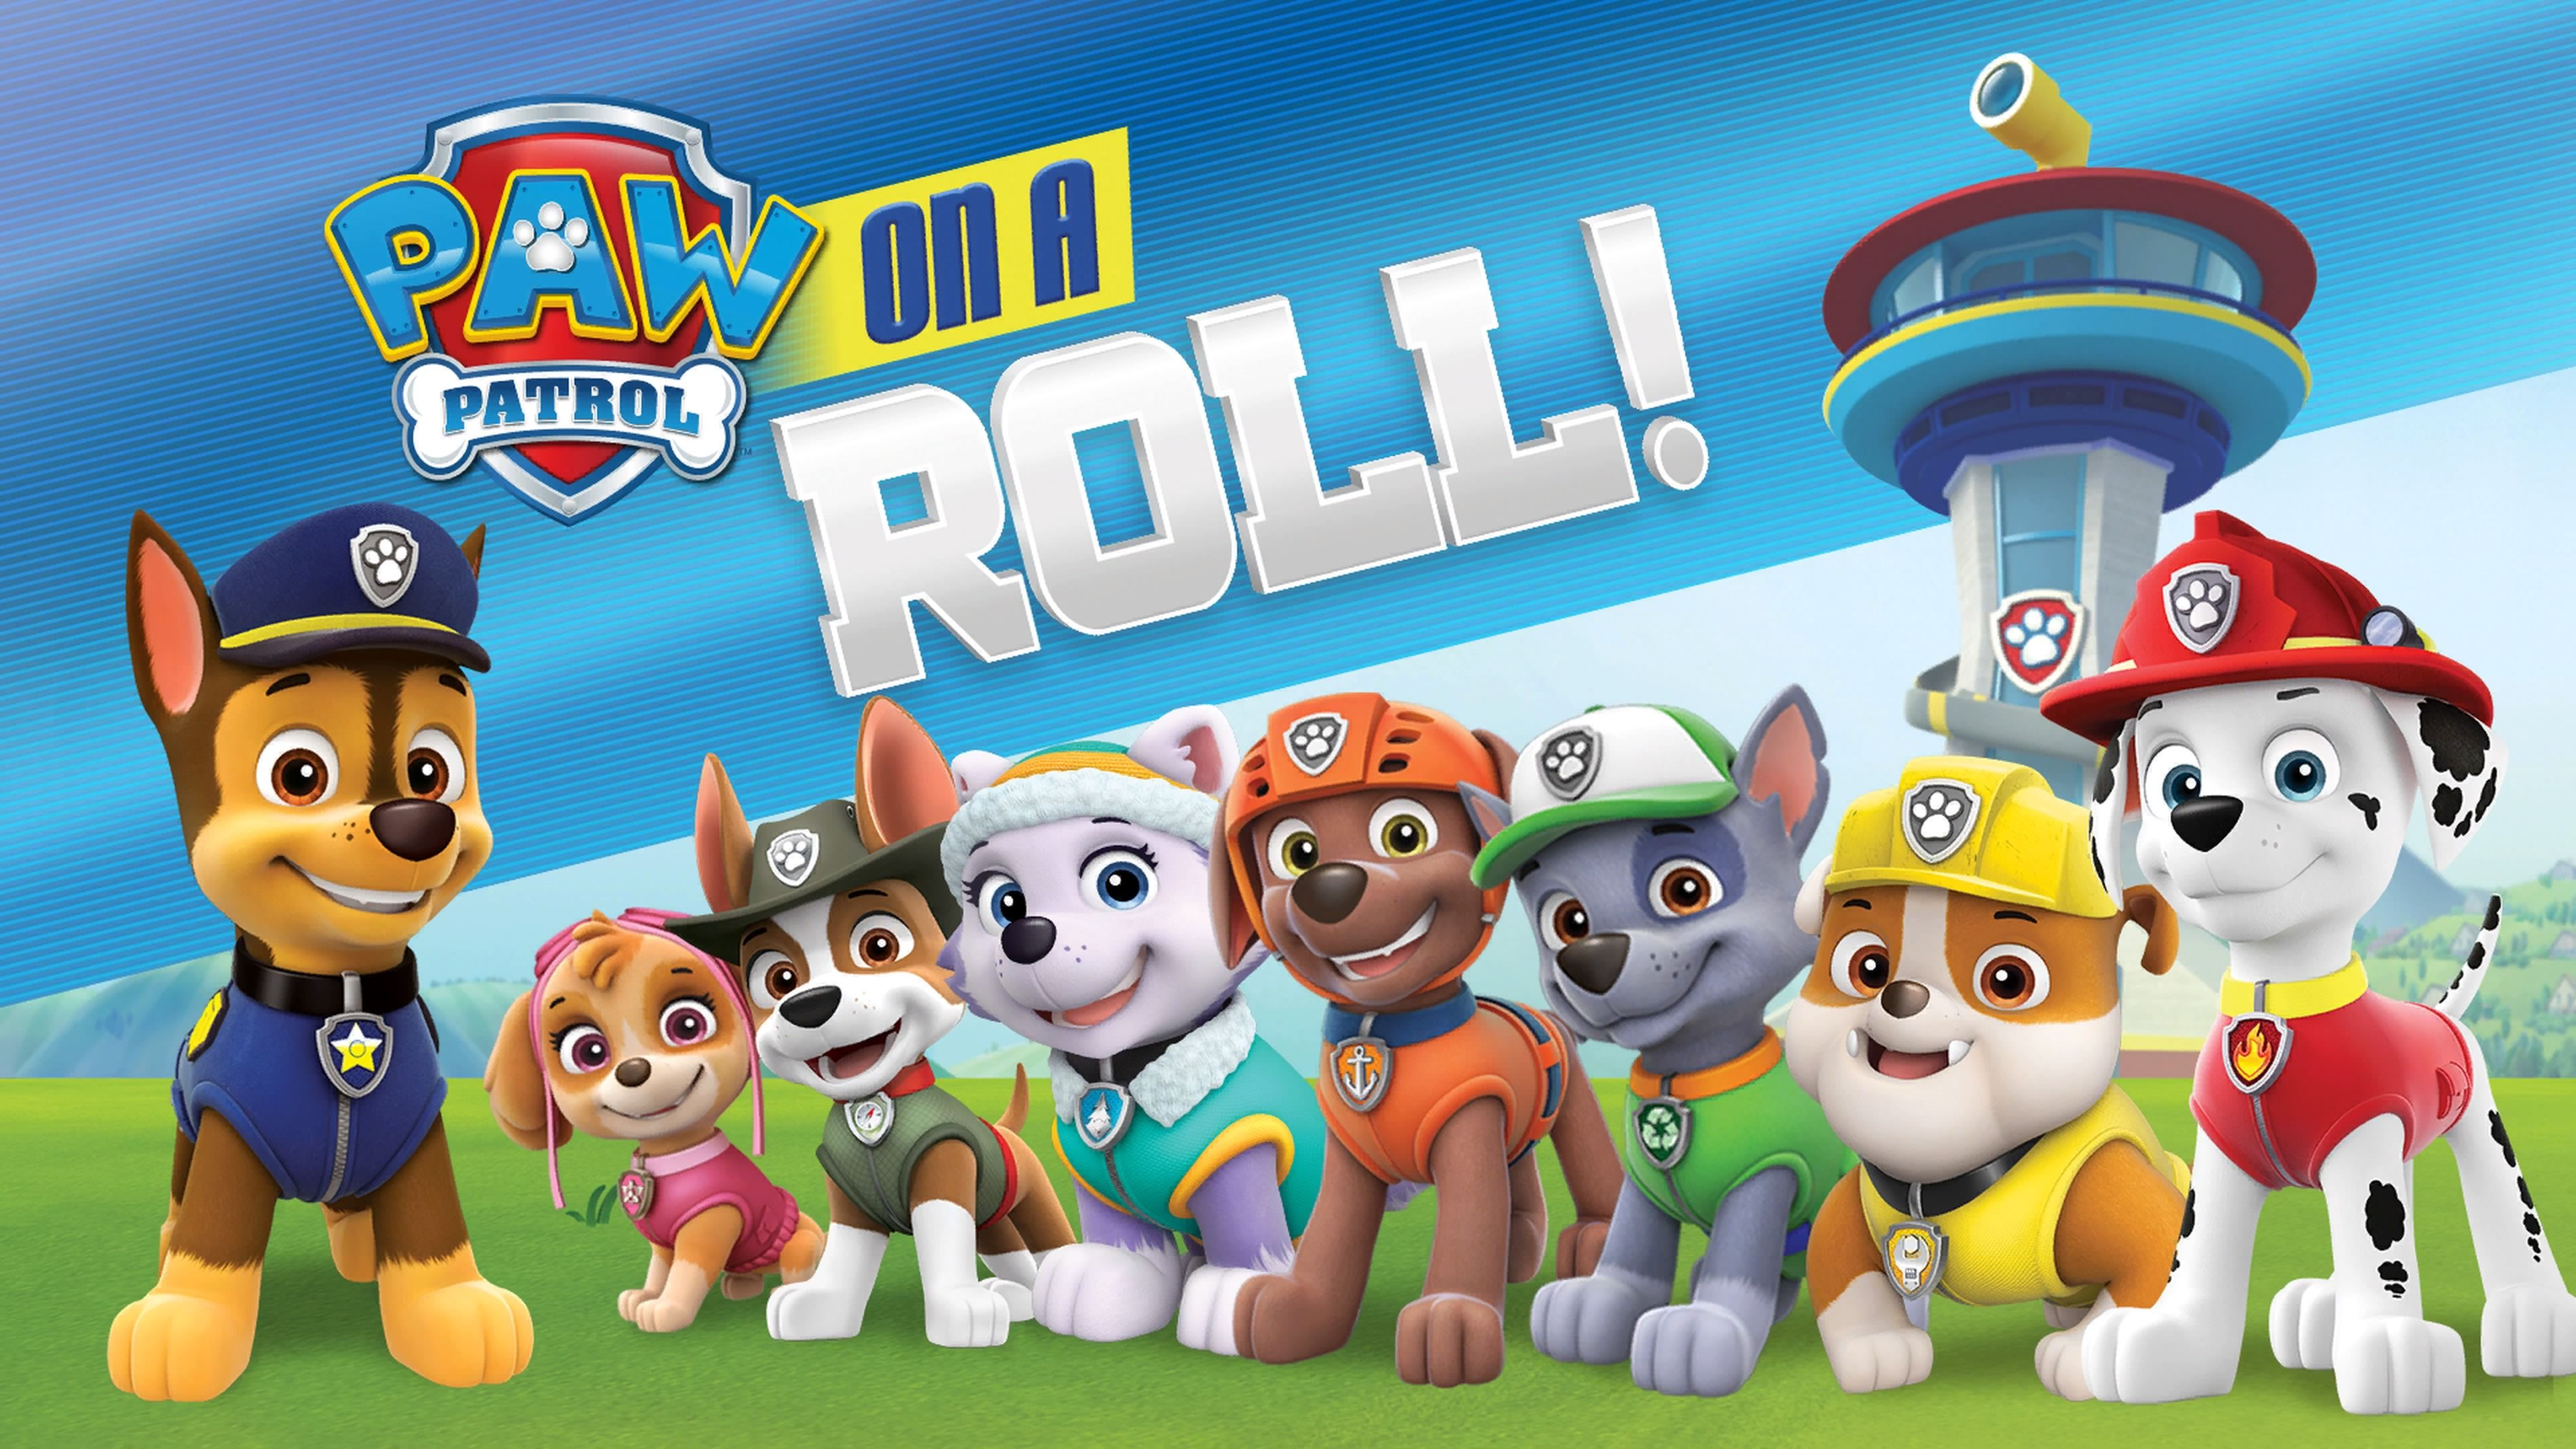 Chase Gallery Paw Patrol Wiki Fandom Paw Patrol Characters Paw Patrol Coloring Pages Paw Patrol Coloring